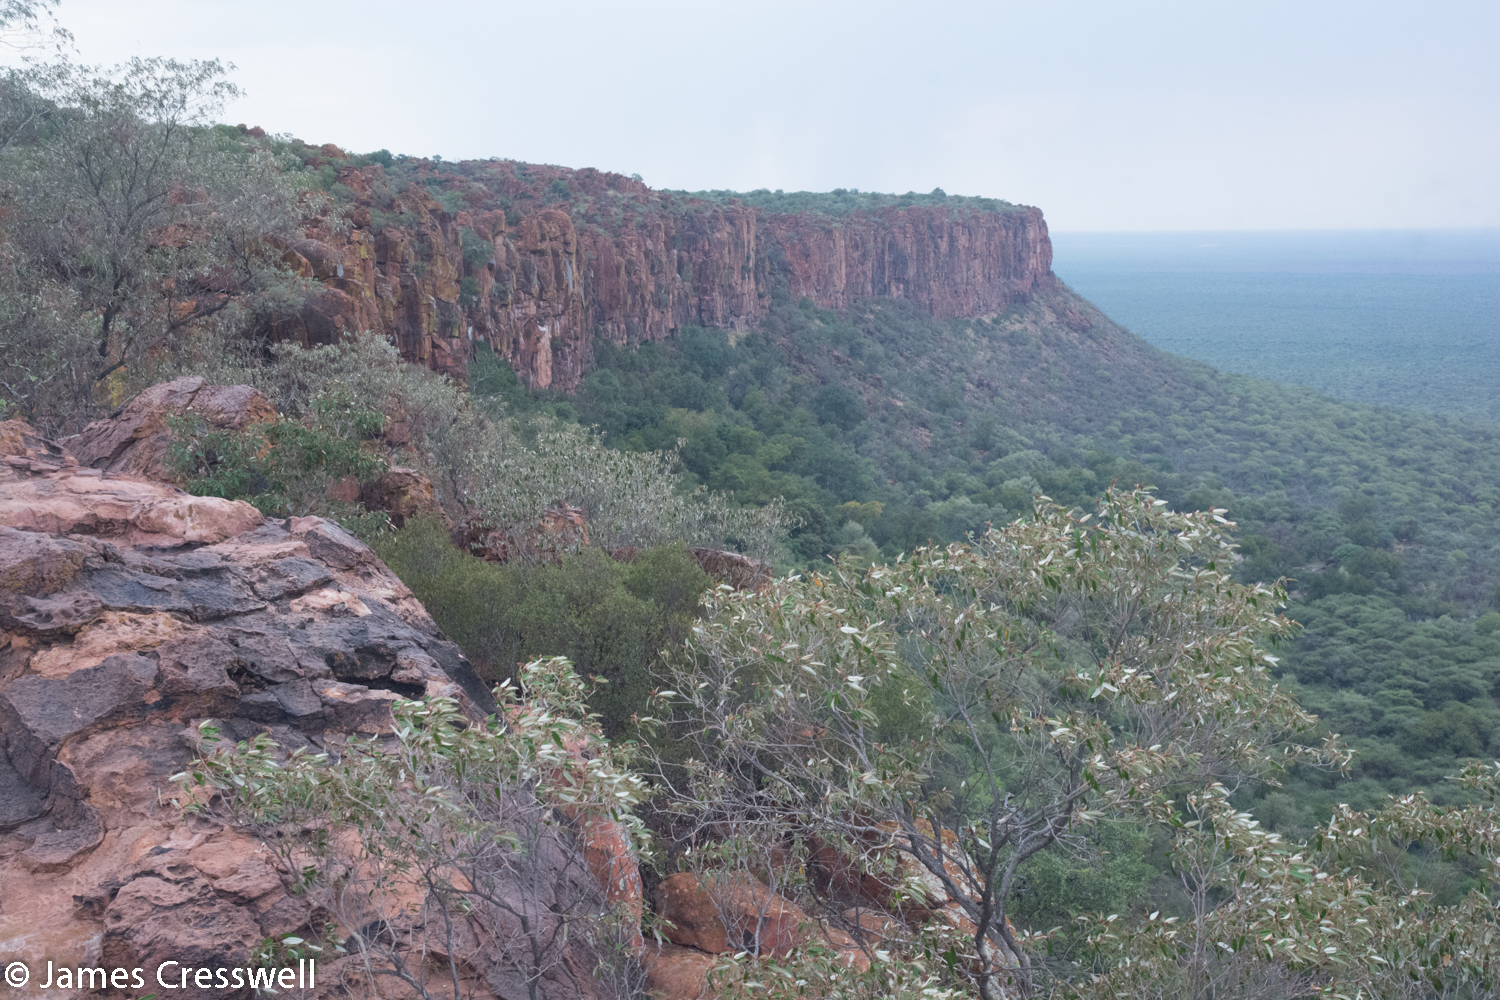 The Waterberg Ecarpment, Namibia. The rock is Jurassic sandstone. The escarpment is caused by the reactivation of a Precambrian fault (Damaran) when Gondwana split to form the South Atlantic.